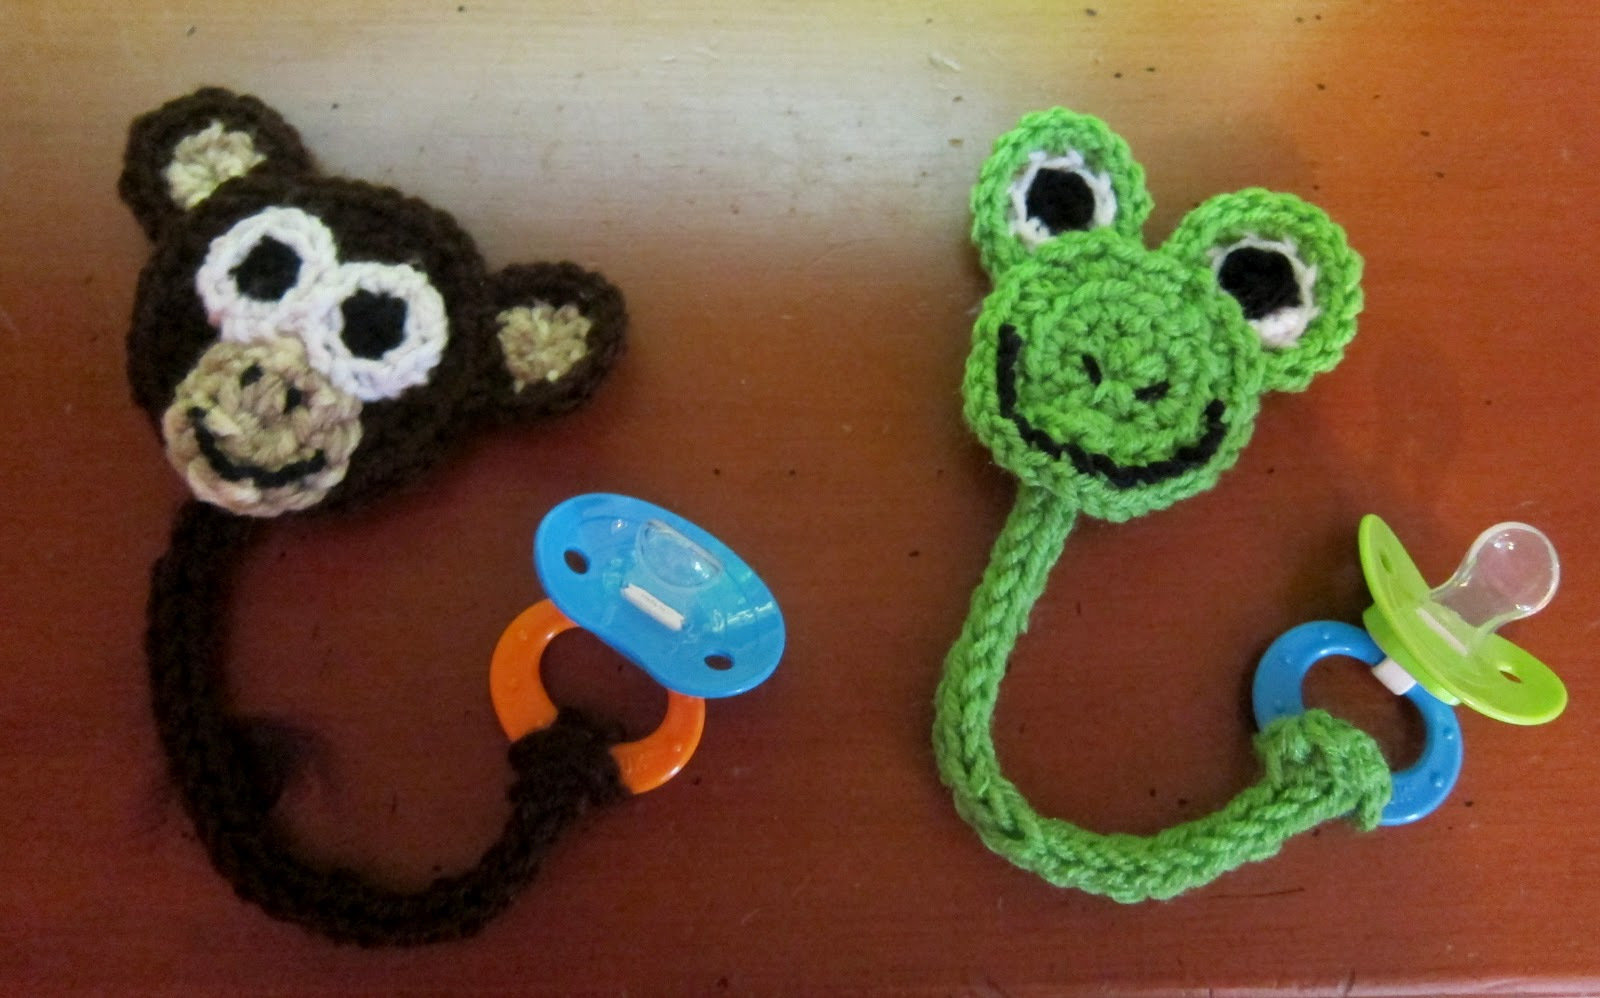 Free Pattern This Technique Used To Make The Monkey And The Frog Is